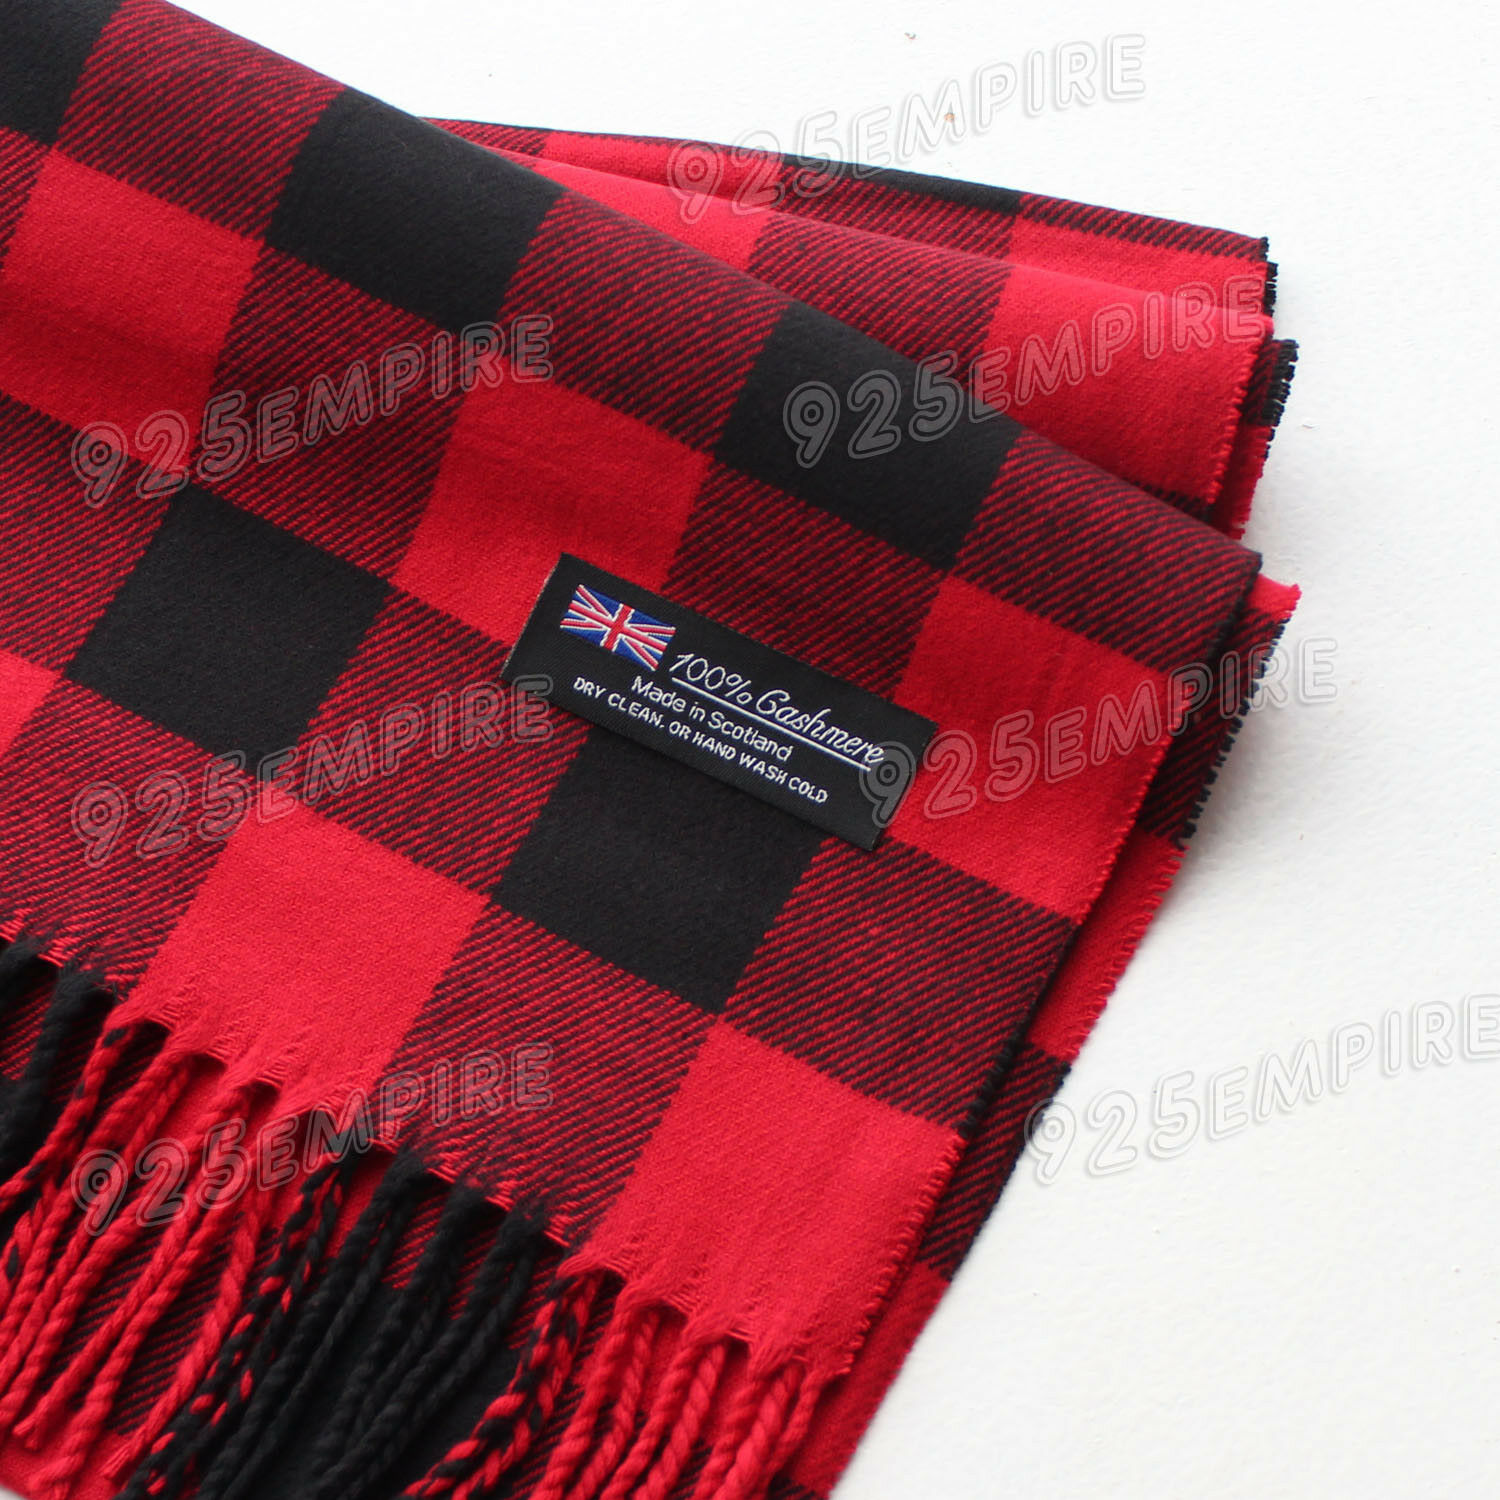 Scarf - Women 100% CASHMERE Red/Black Square check tartan Plaid Scarf MADE IN SCOTLAND